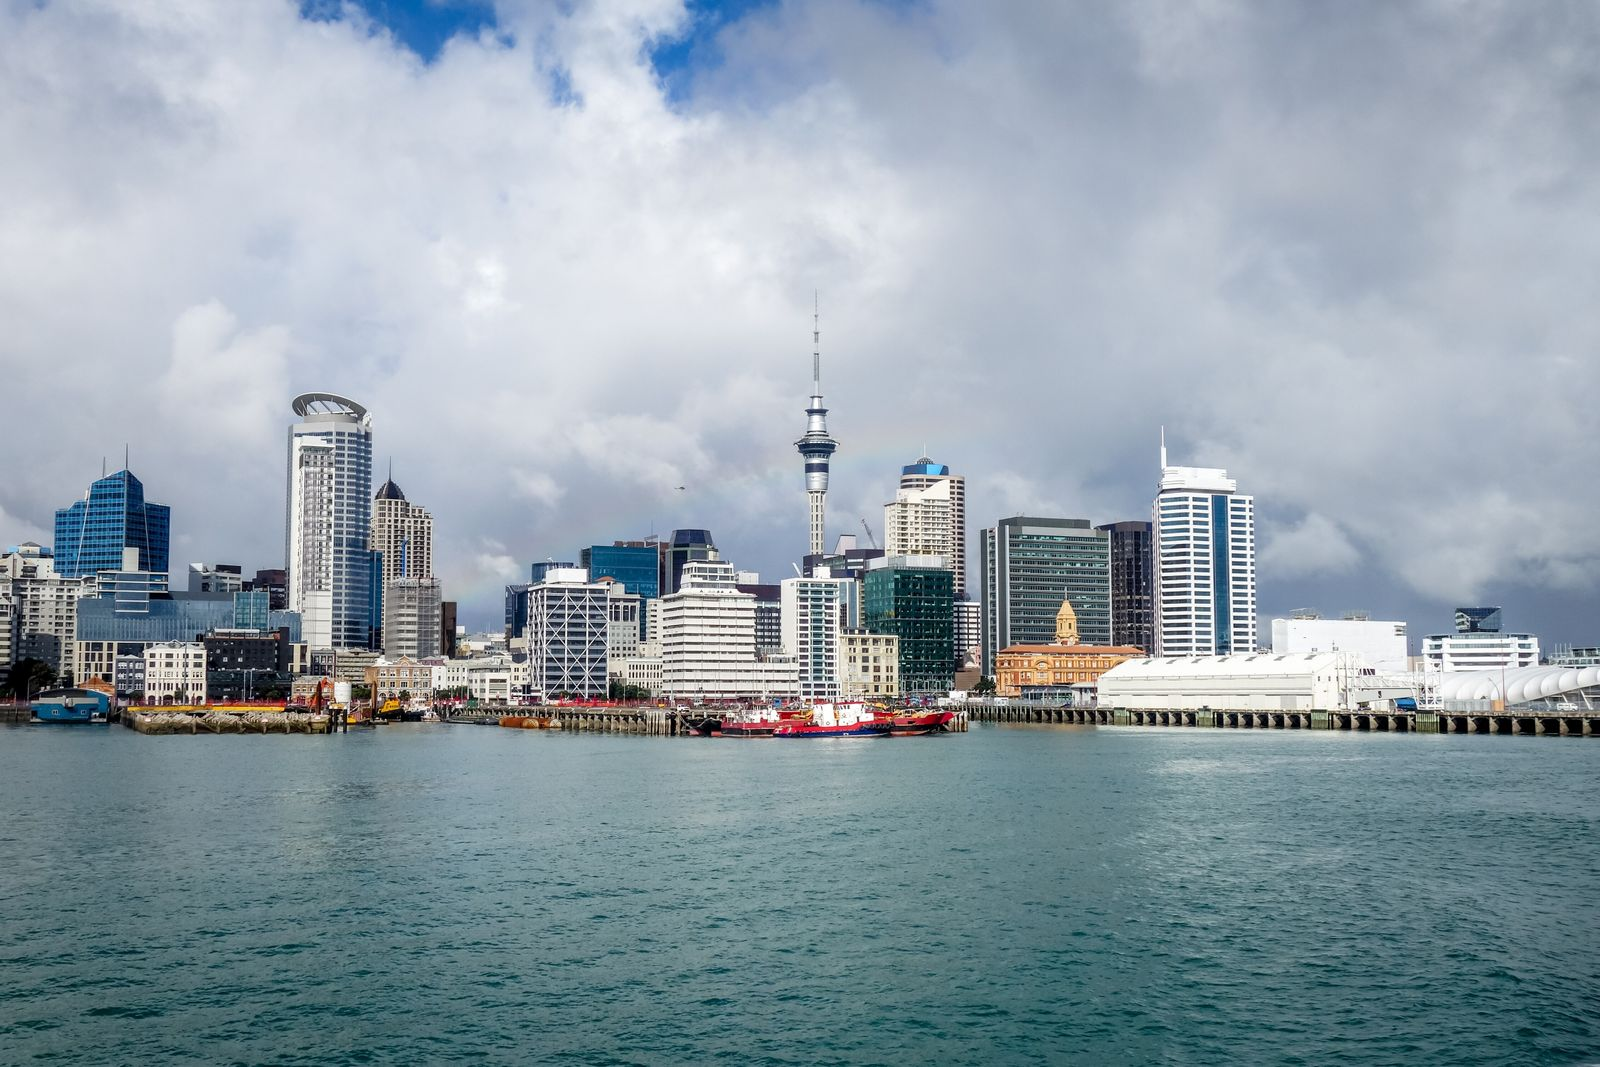 Auckland city center view from the sea, New Zealand (YAY Micro)